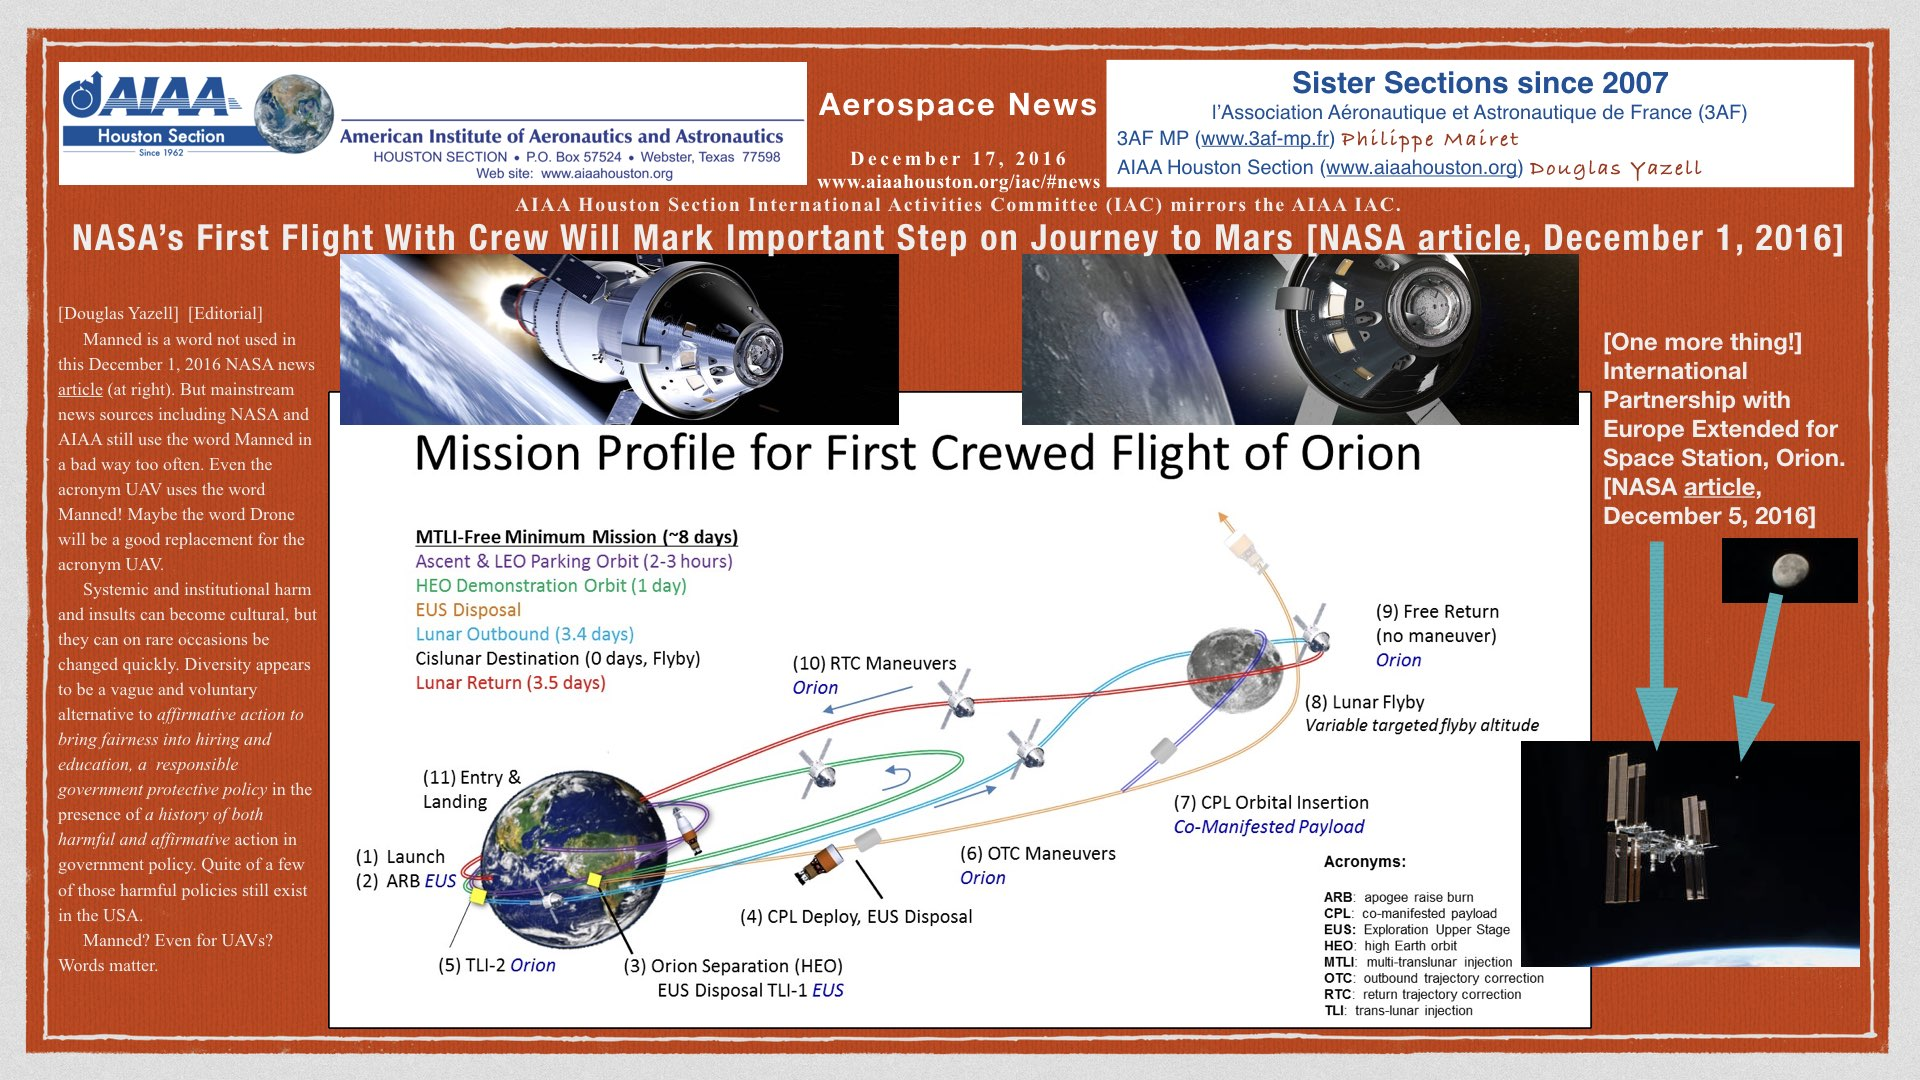 Above: NASA's First Flight With Crew Will Mark Important Step on Journey to Mars [NASA article, December 1, 2016]. (Click to zoom.)